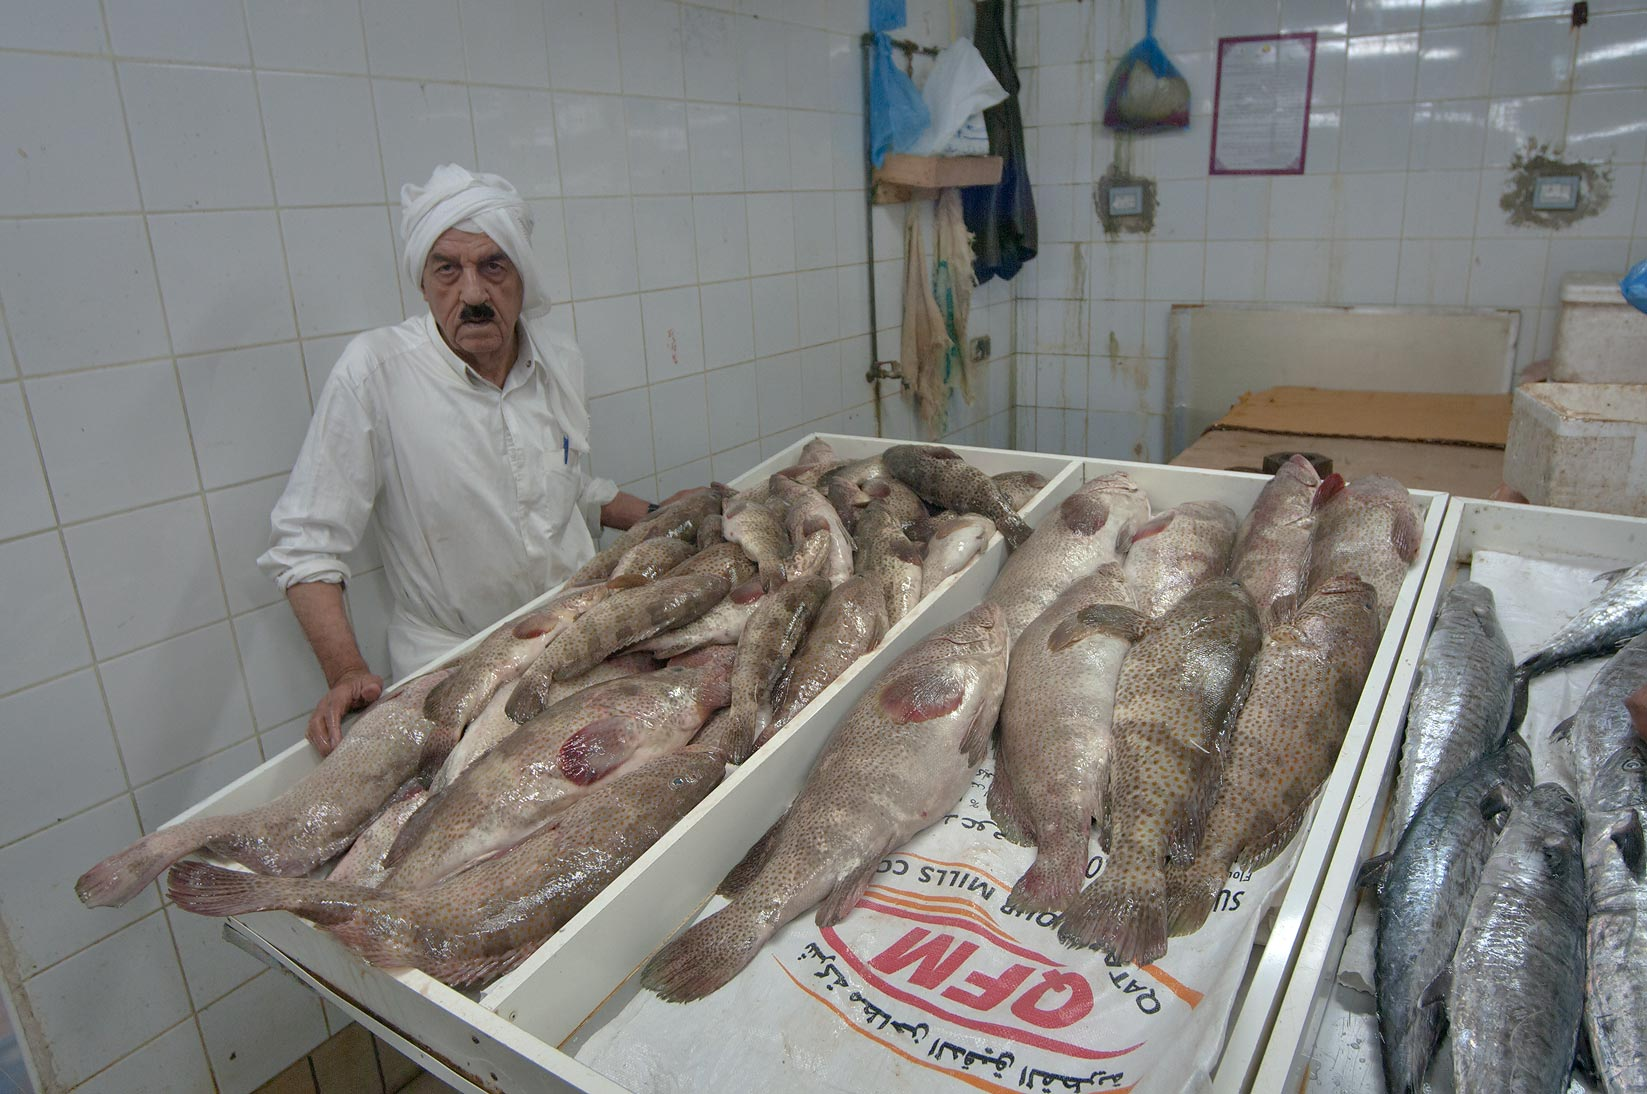 Vendor at fish stall in Central Fish Market. Doha, Qatar